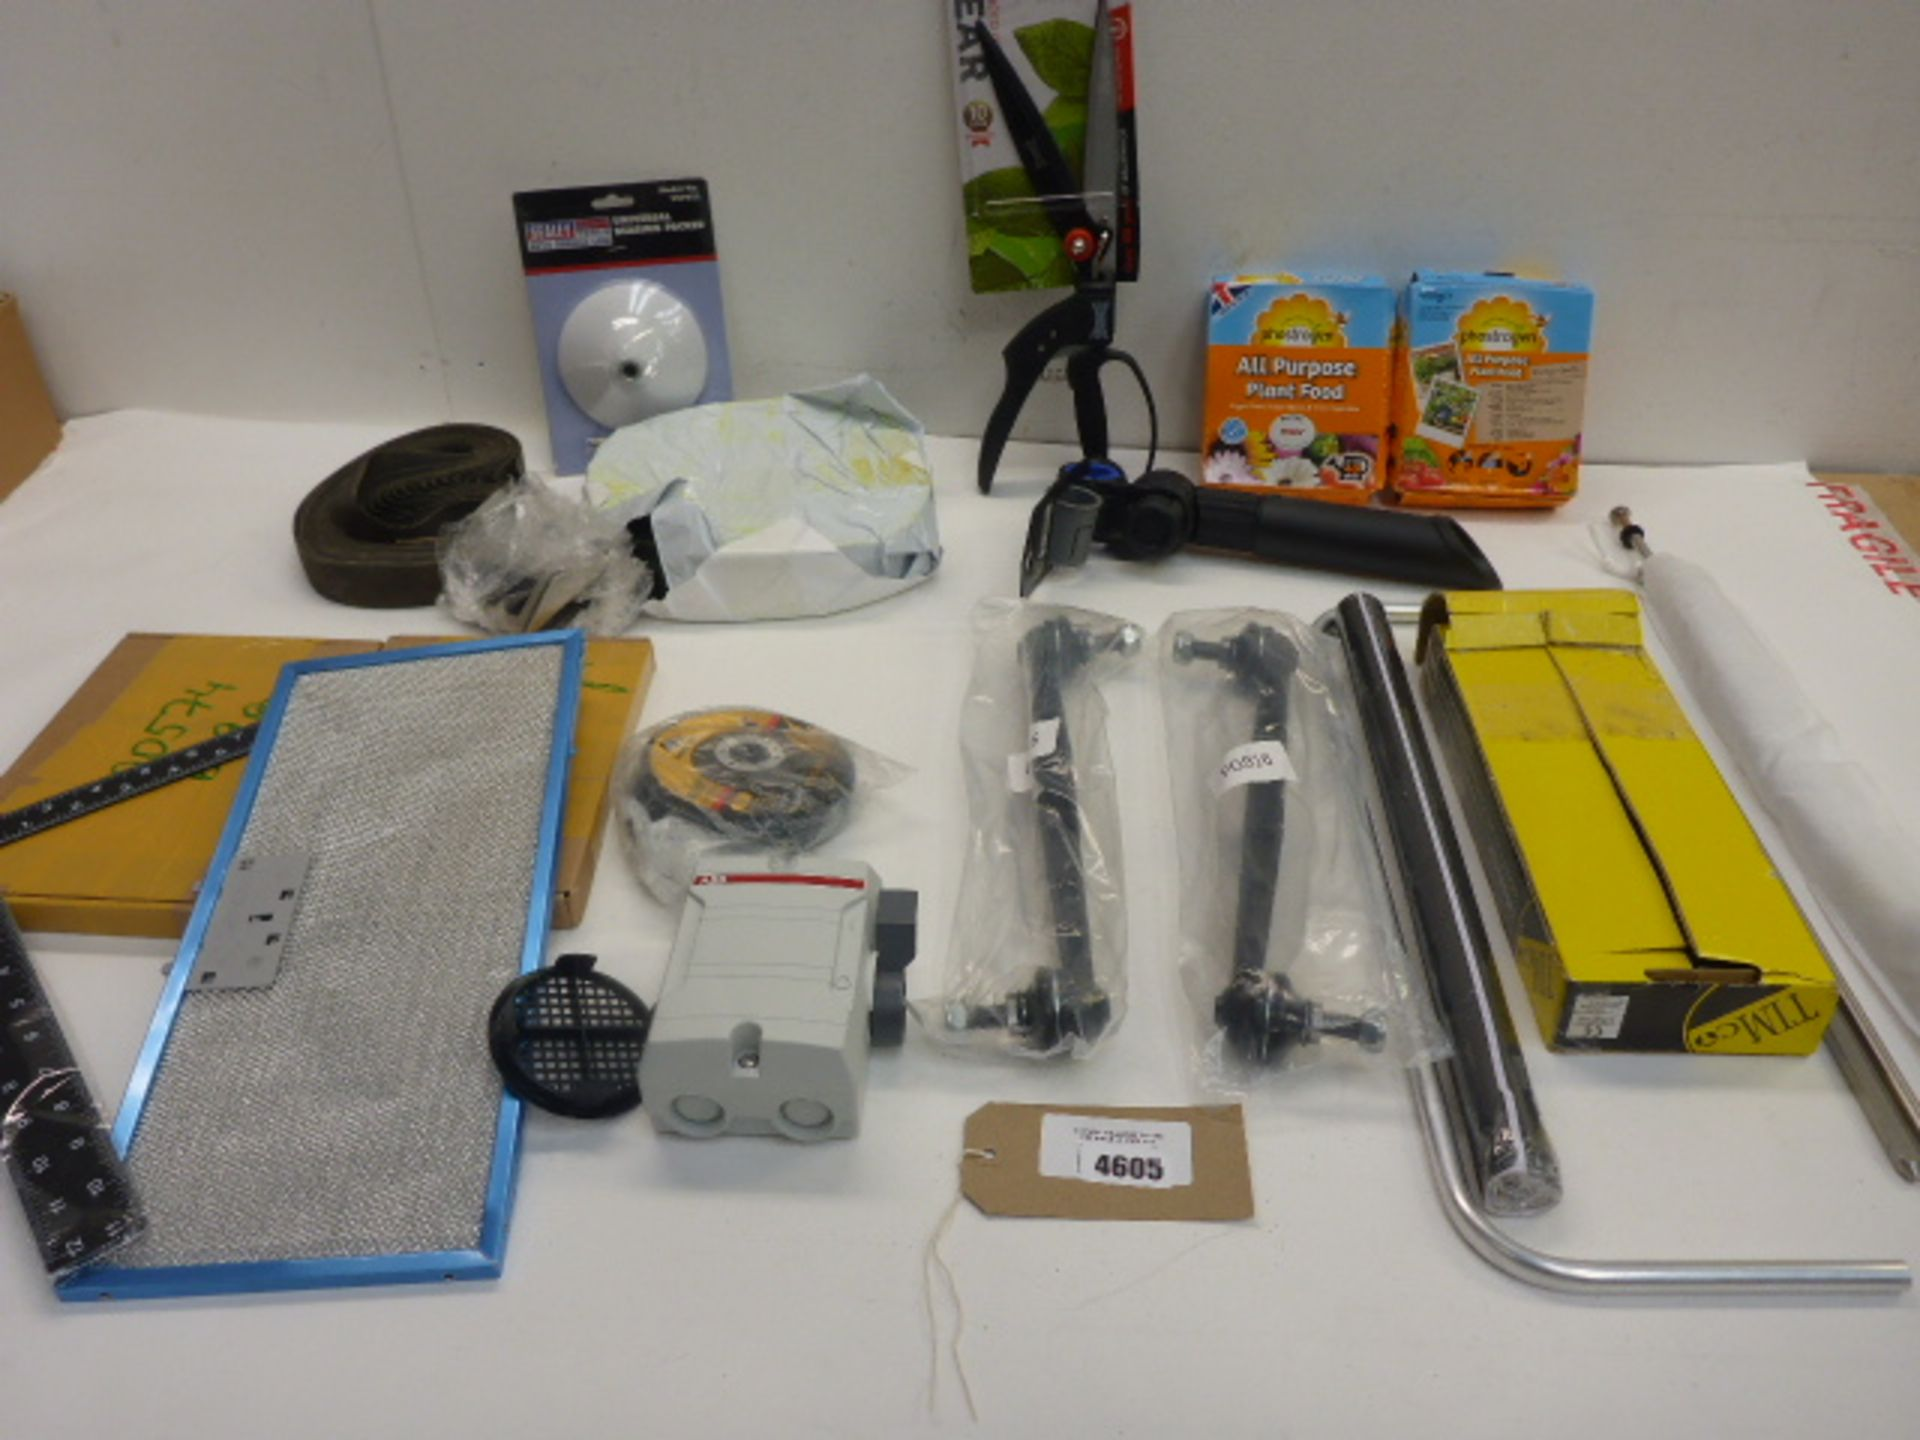 Lot 4605 - Switch disconnector, screws, plant feed, shears, bearing packer, cutting discs etc